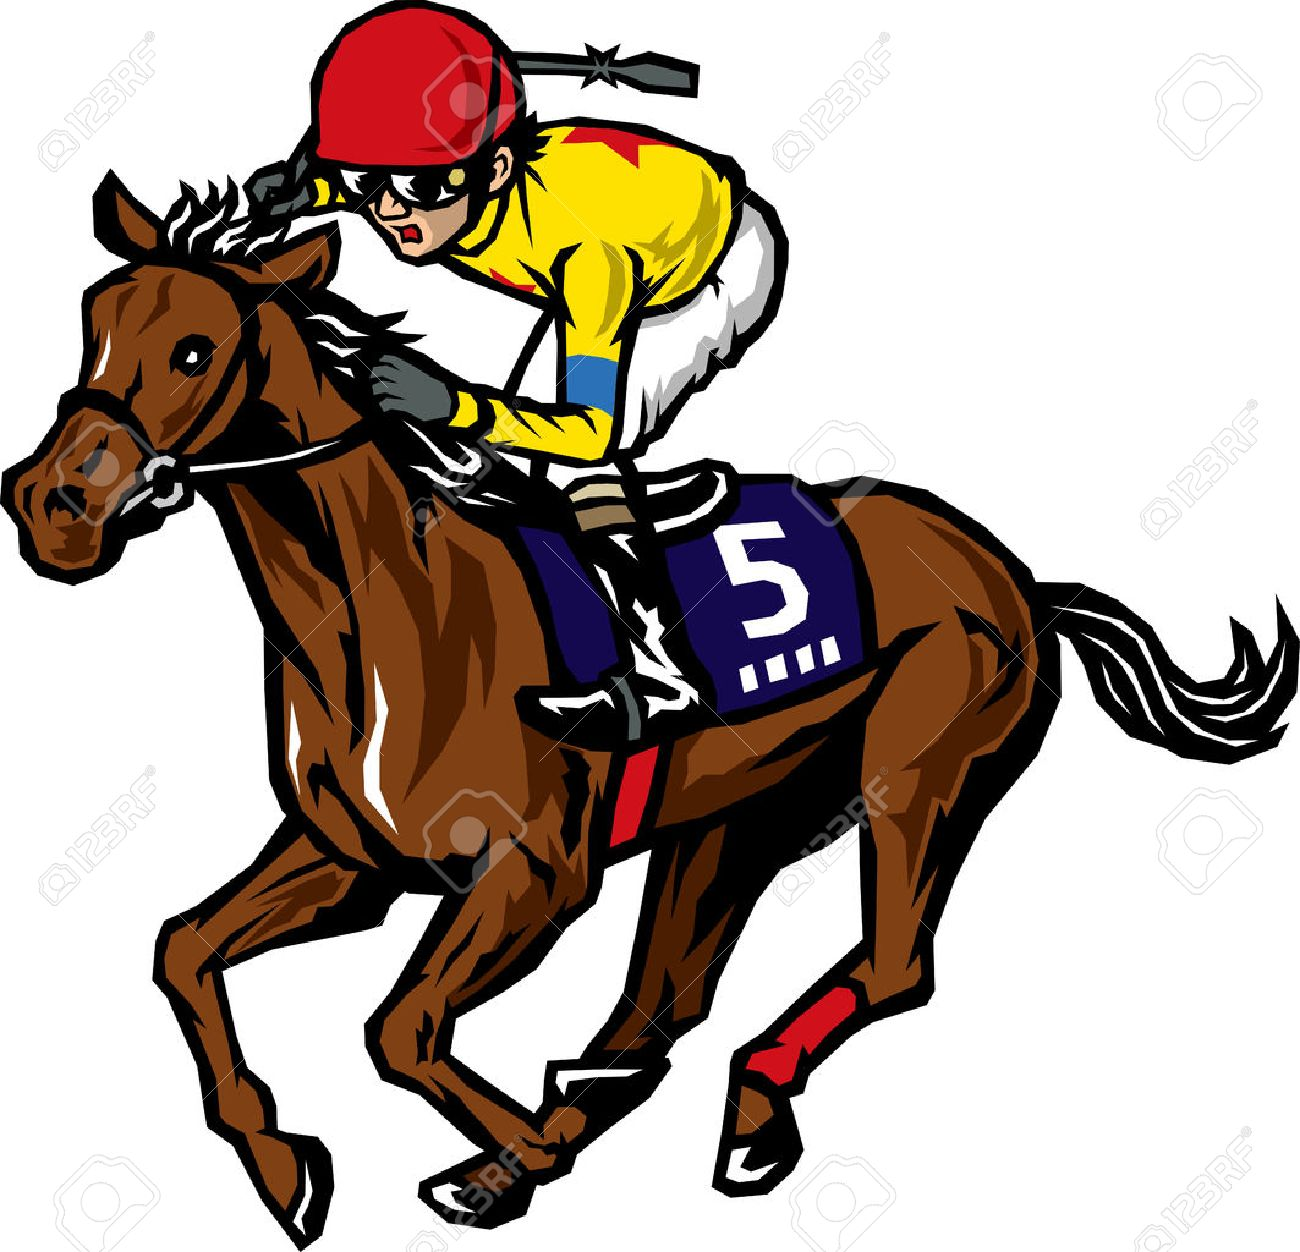 horse racing royalty free cliparts vectors and stock illustration rh 123rf com horse race clipart horse racing clip art images